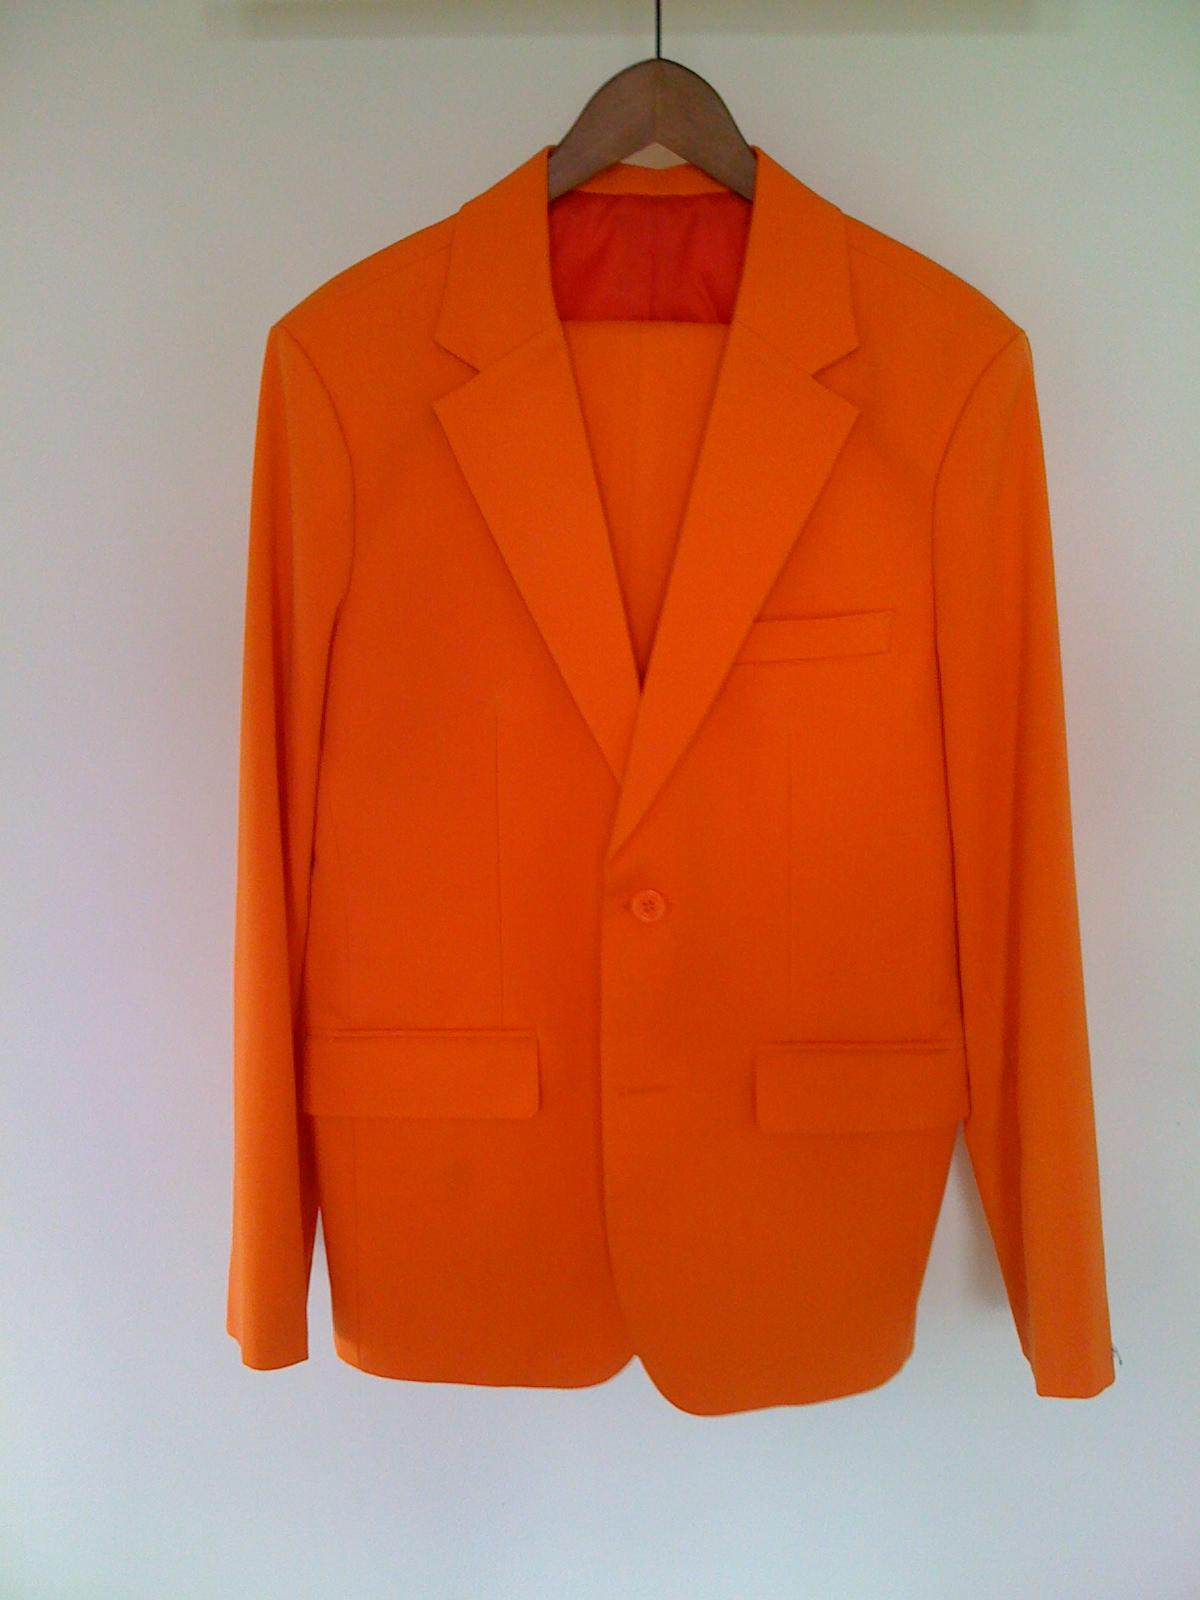 Orange ouftit sample